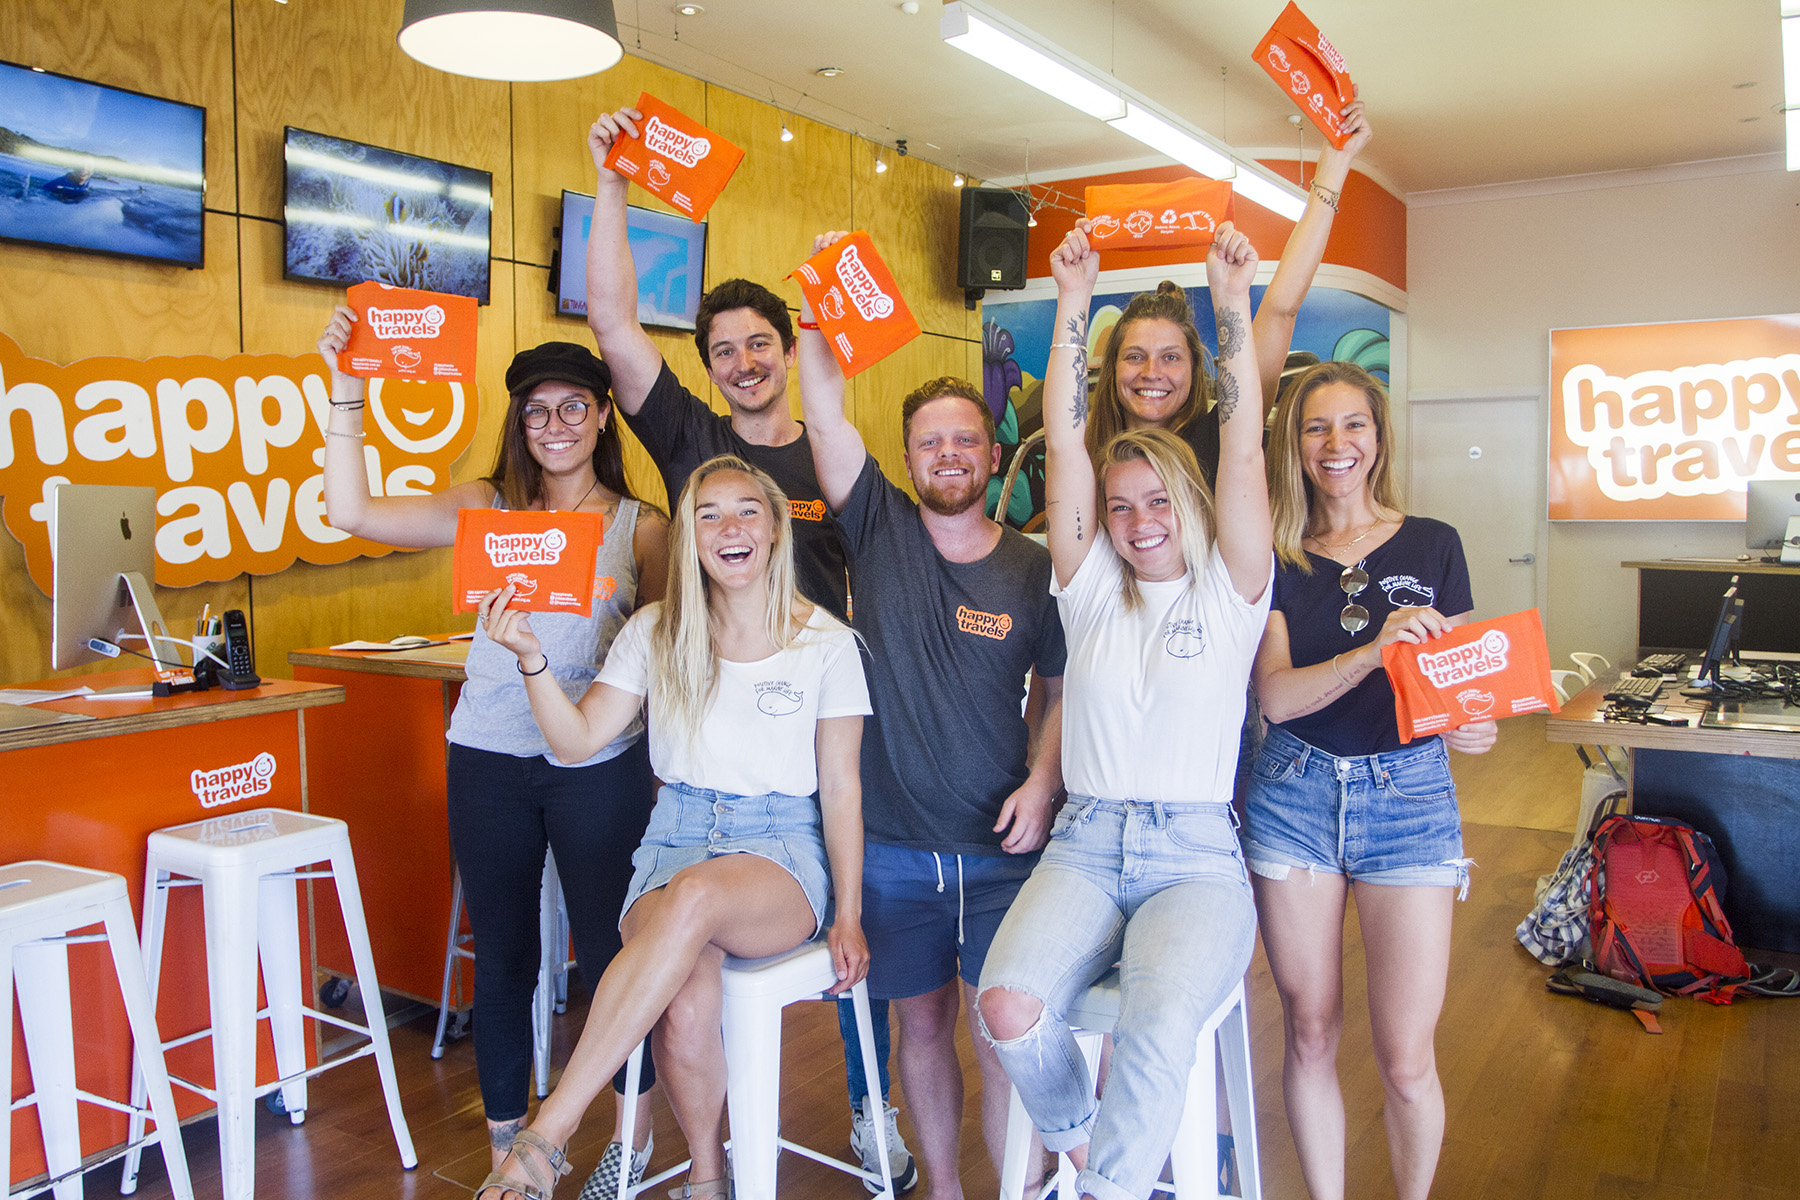 The Happy Travels team and our local PCFML team celebrate the arrival of the first new Happy Planet travel wallets in the Byron Bay store!